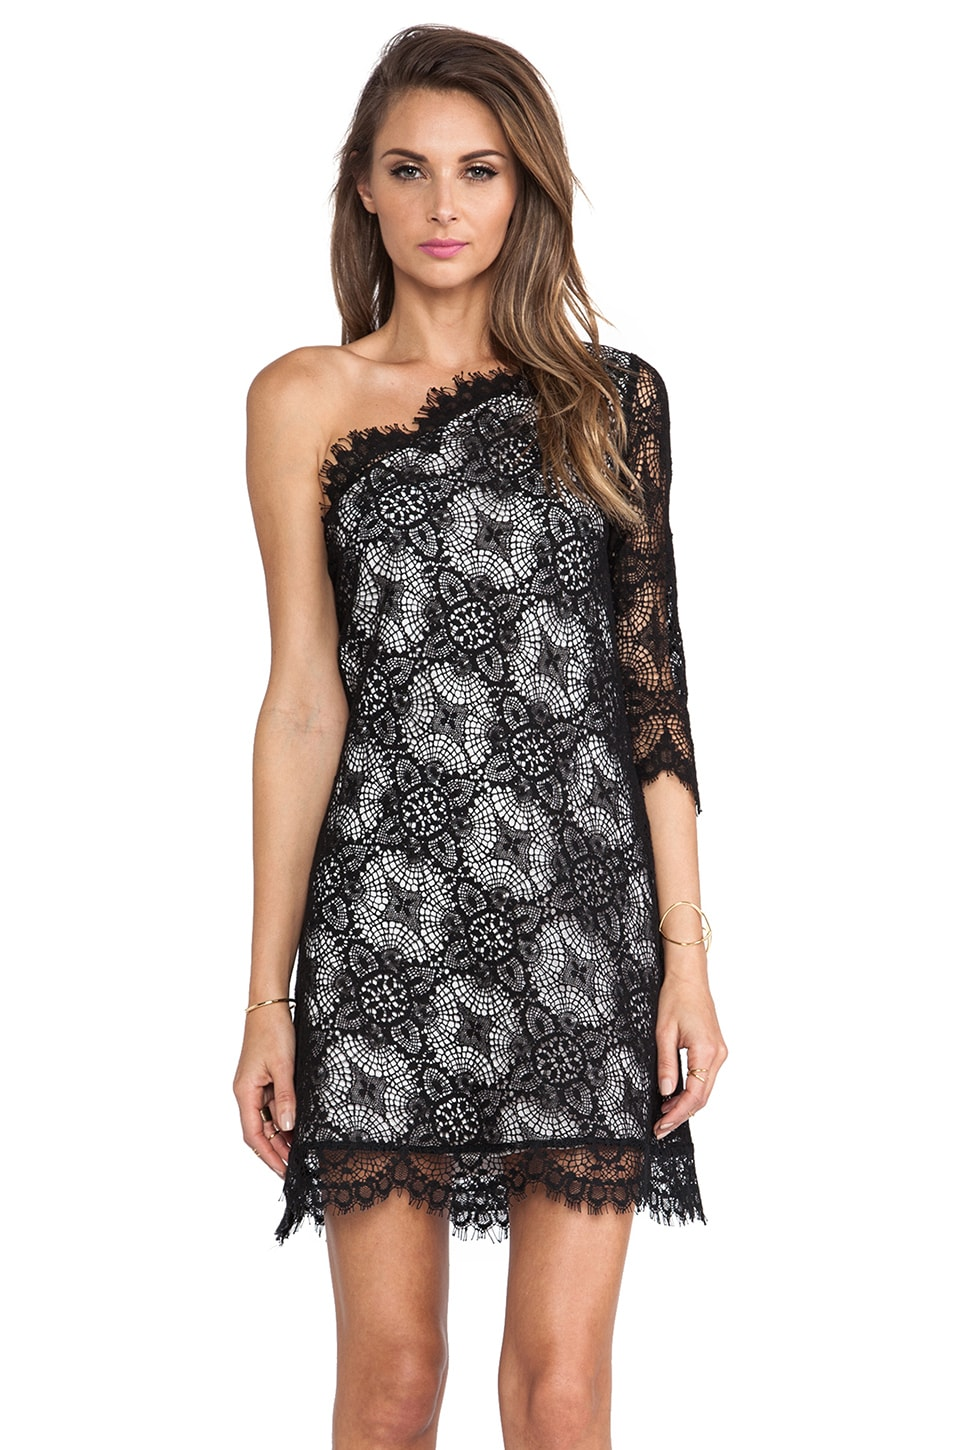 Alexis Richards One Shoulder Crochet Dress in Black Crochet